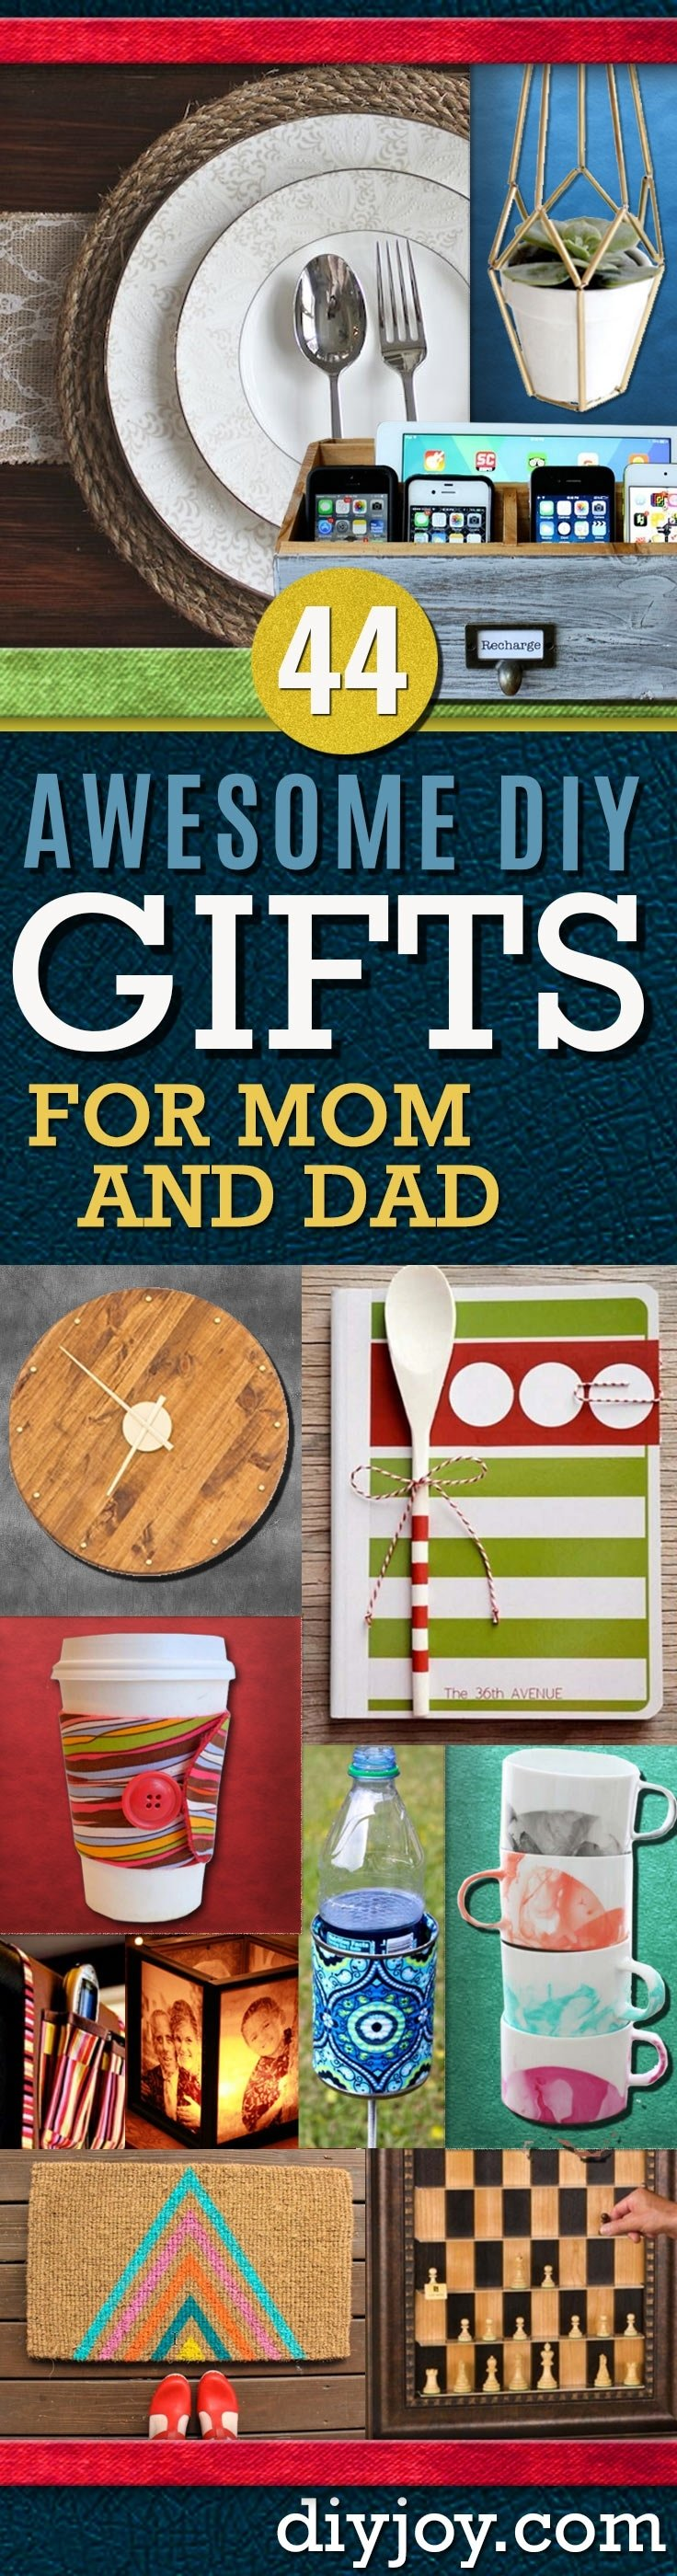 10 Nice Homemade Christmas Gift Ideas For Mom awesome diy gift ideas mom and dad will love 7 2020